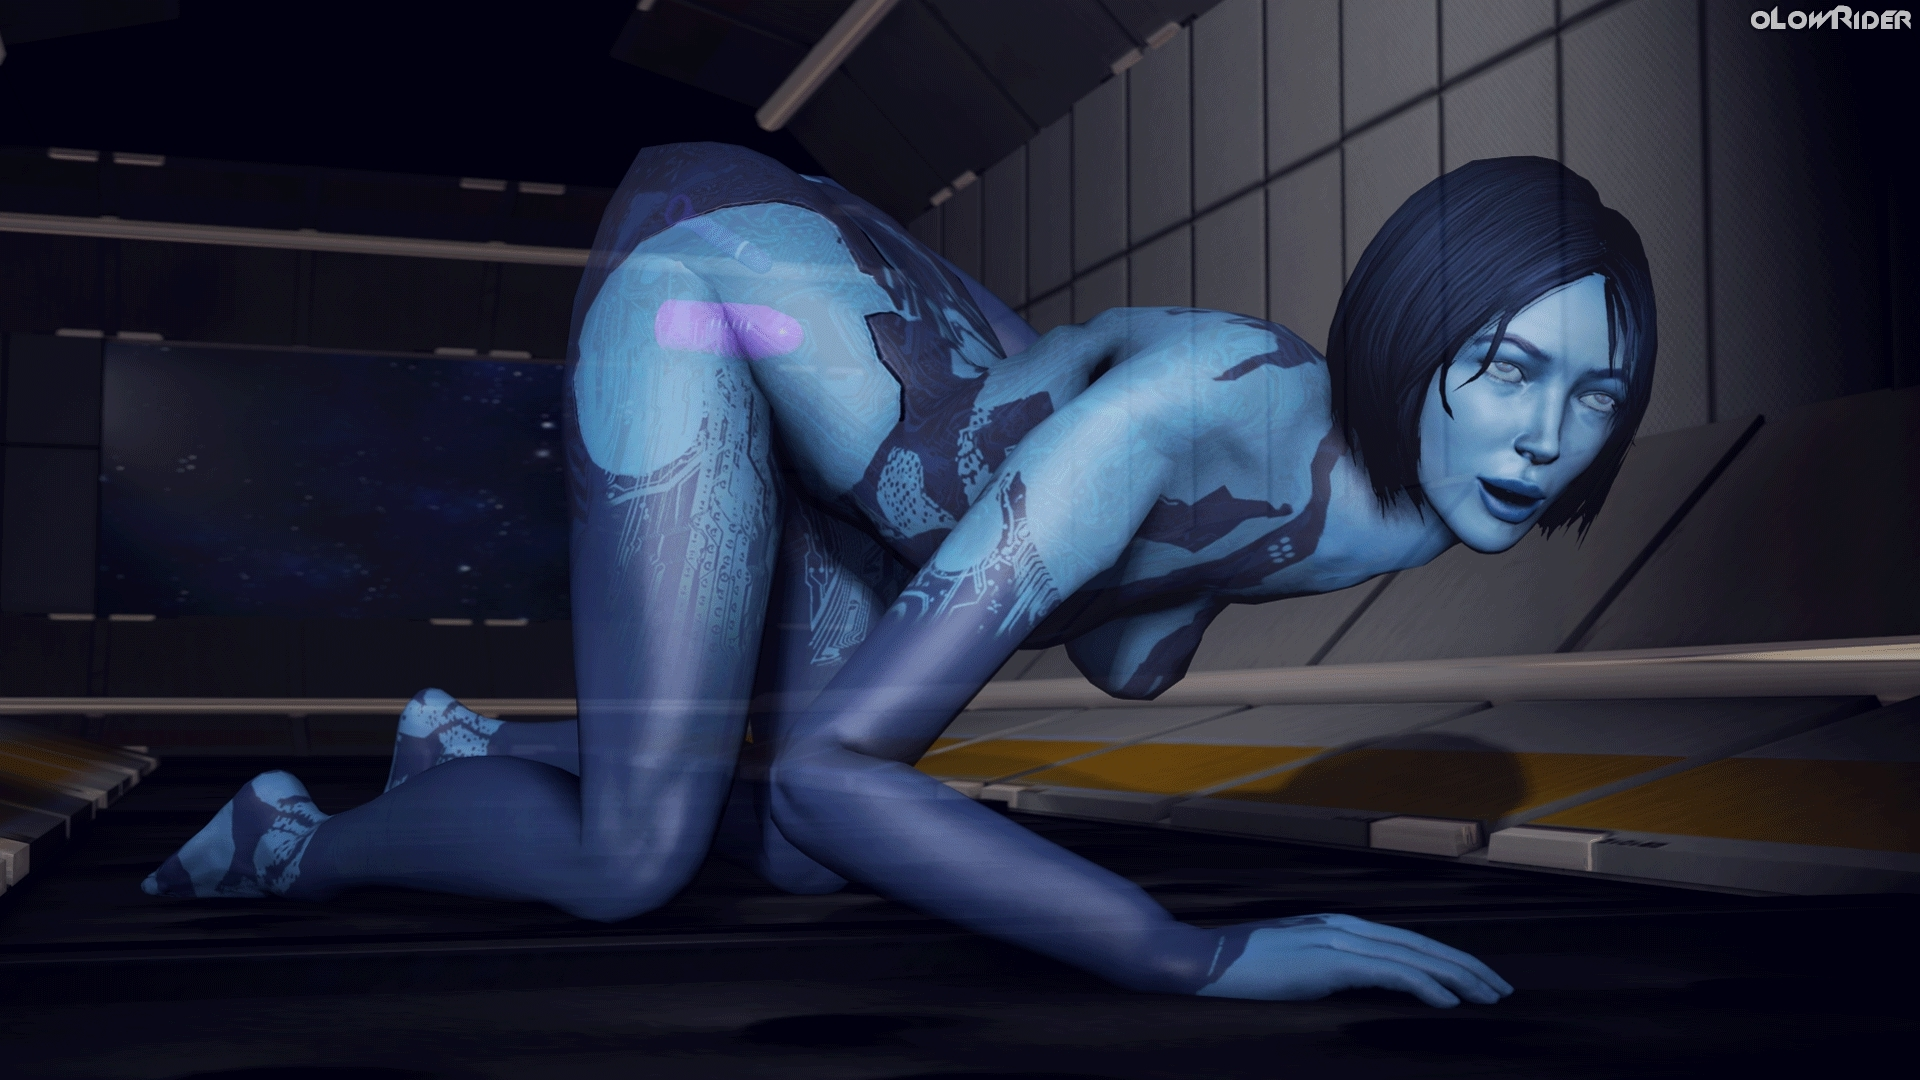 Halo cortana human porn anime clips